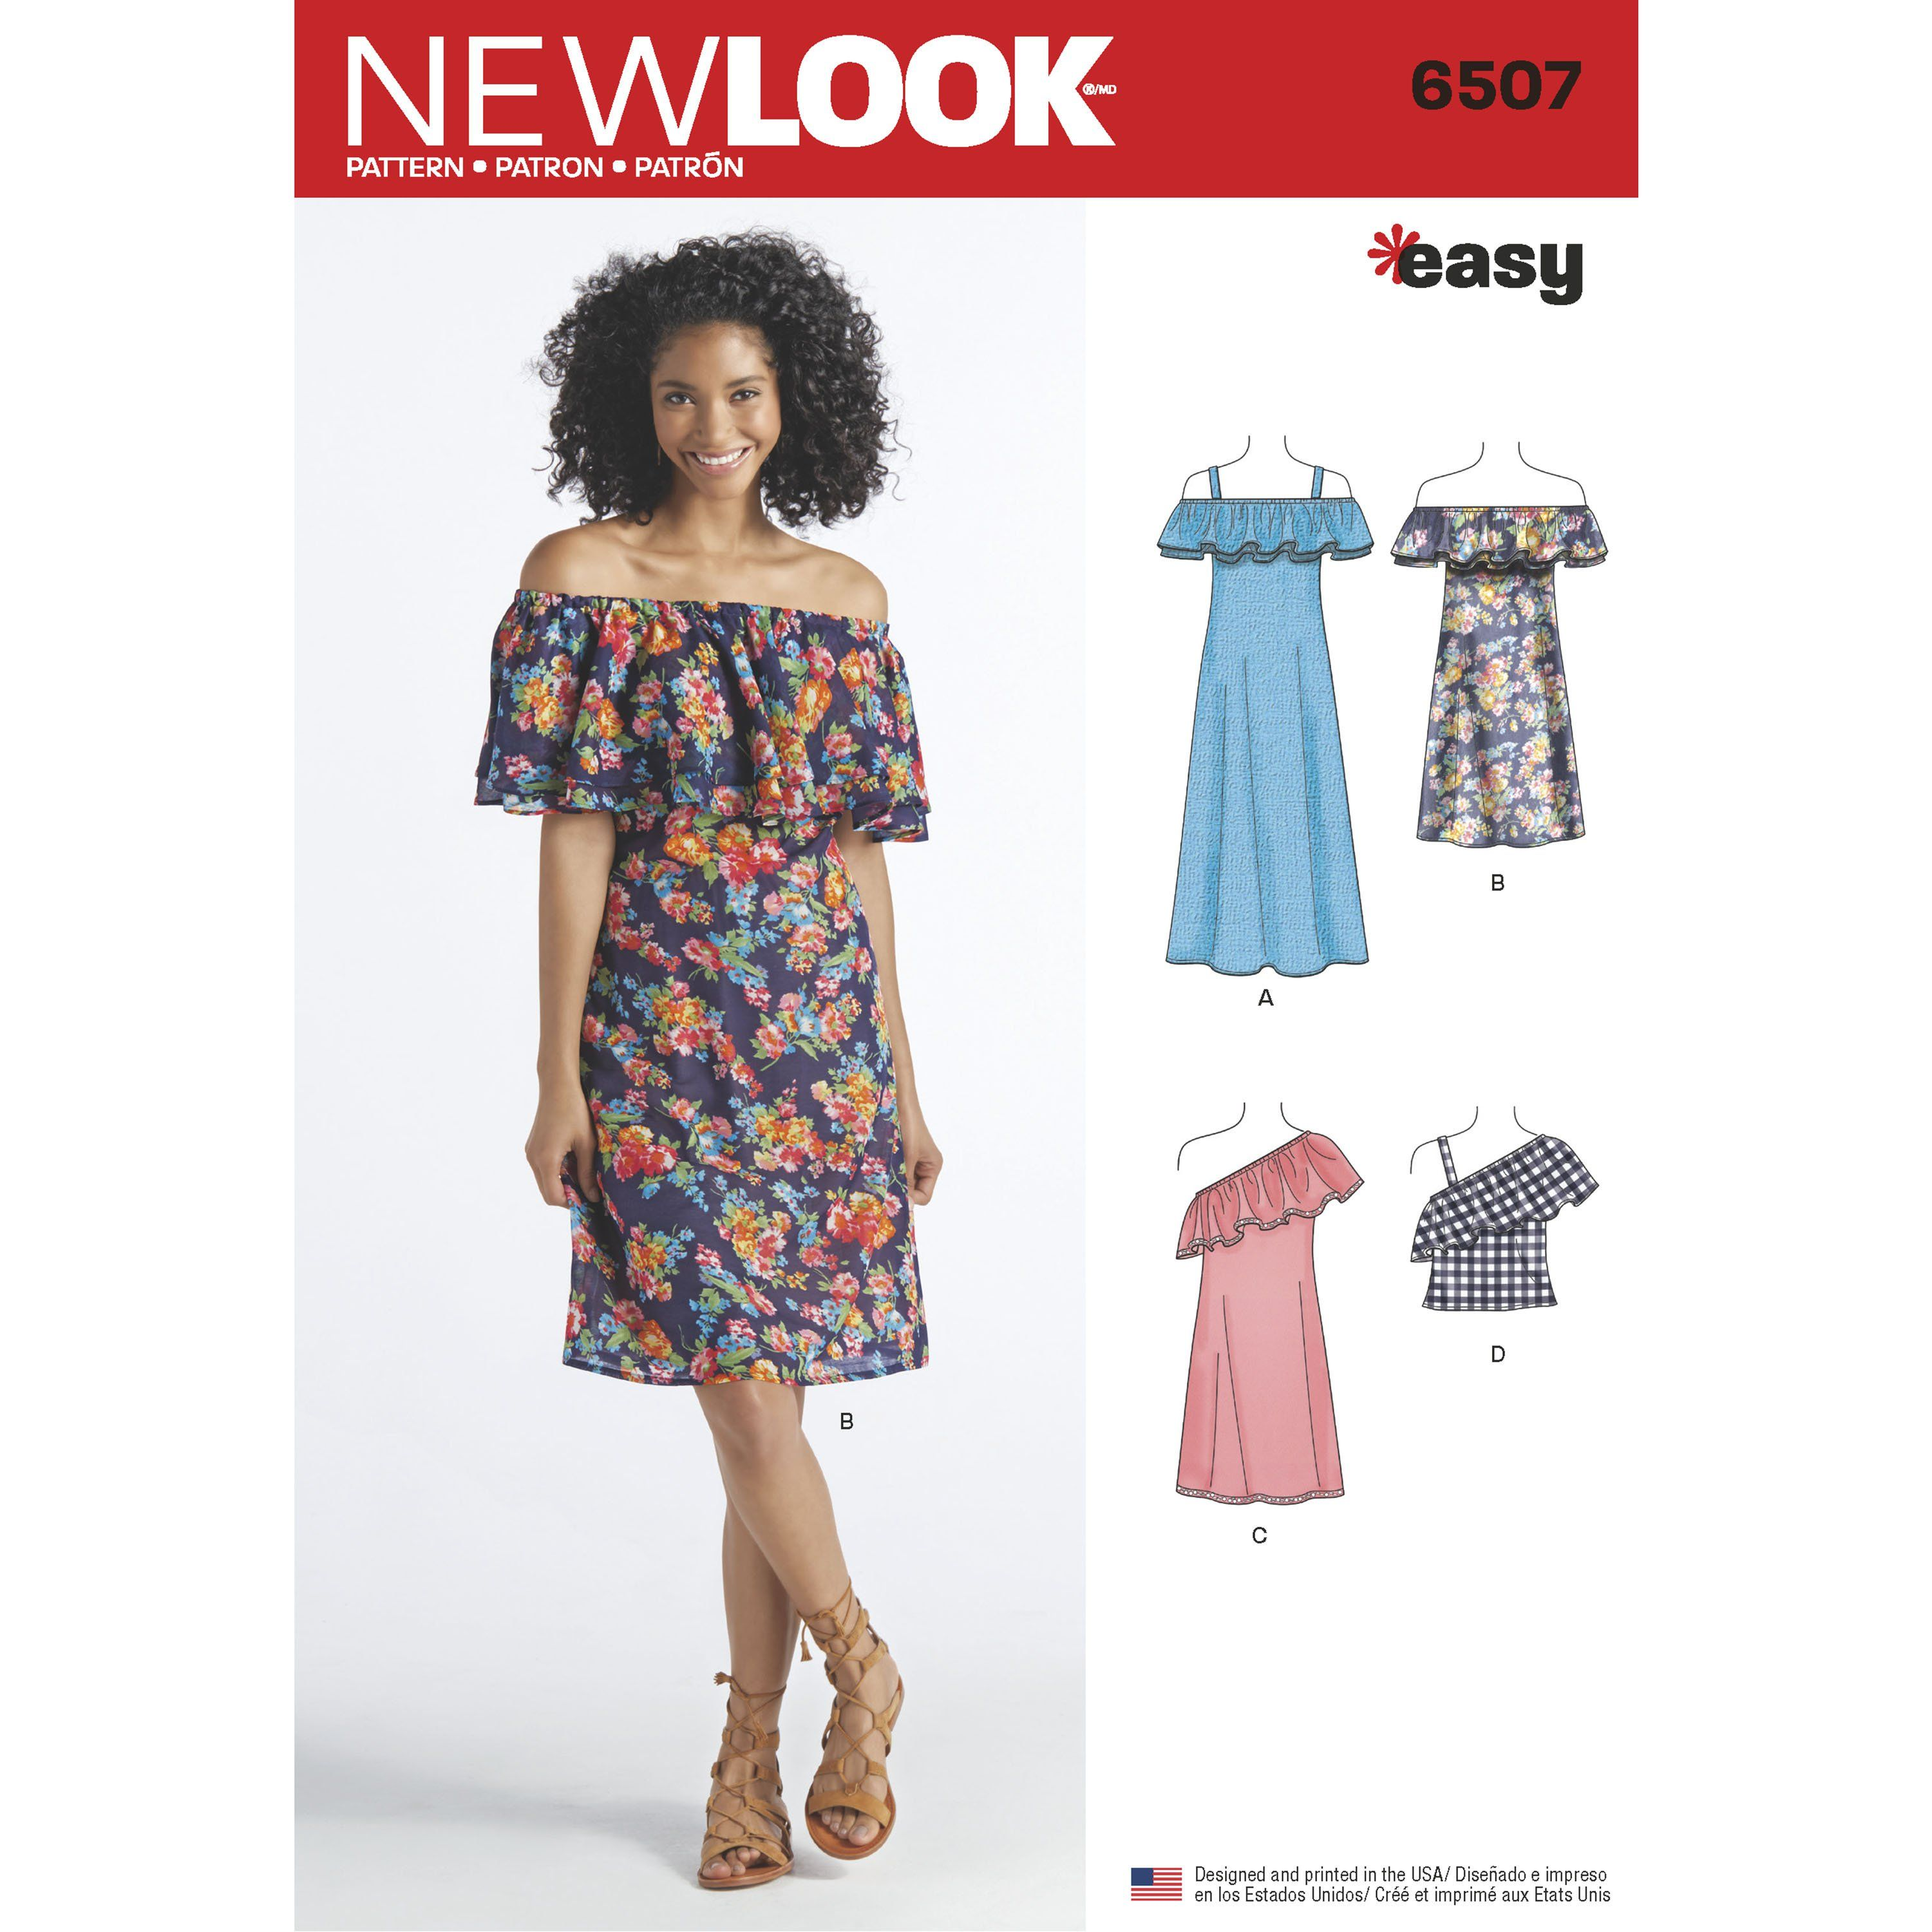 b691eaa219a4c New Look 6507 Misses  Dresses and Top